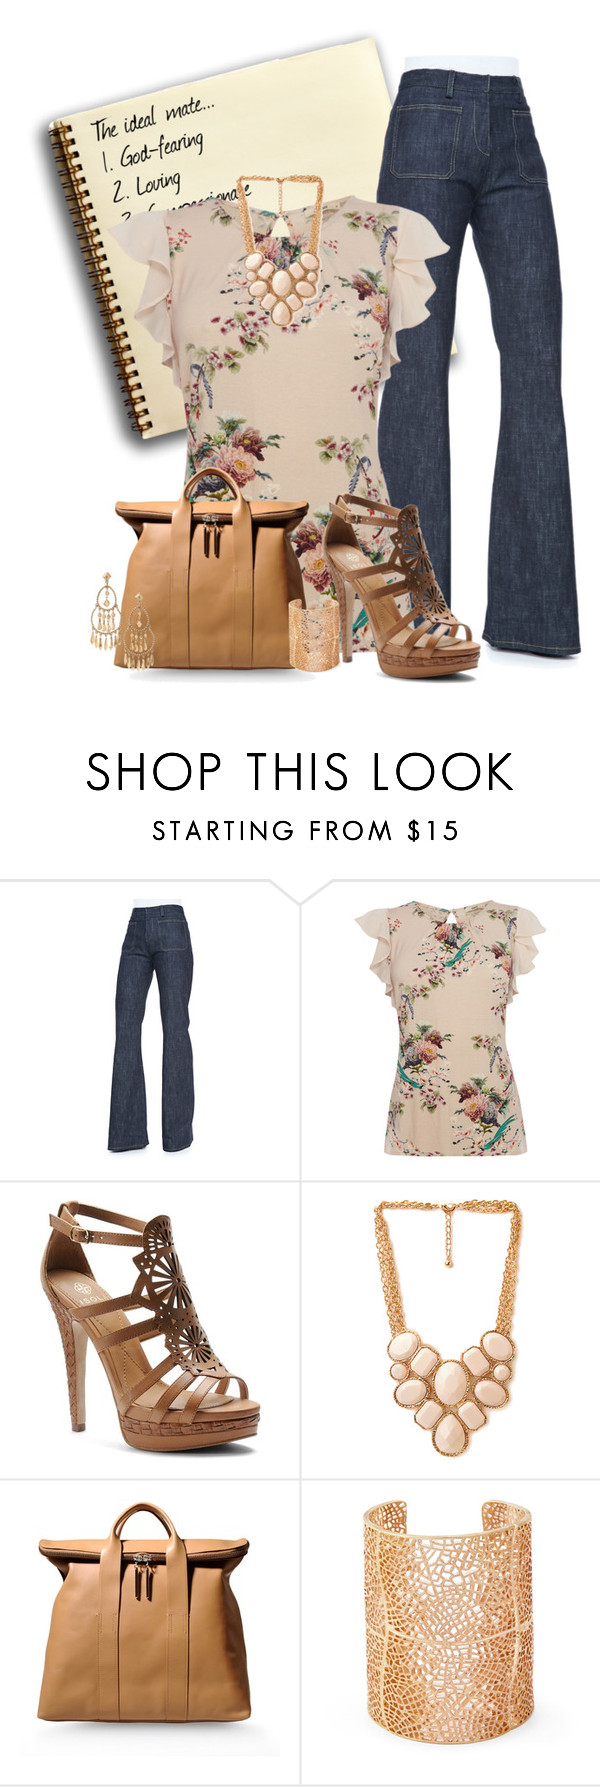 """Date Night"" by dstrn8 ❤ liked on Polyvore featuring Derek Lam, Oasis, Isolá, Forever 21, 3.1 Phillip Lim, Sole Society and Stella & Dot"